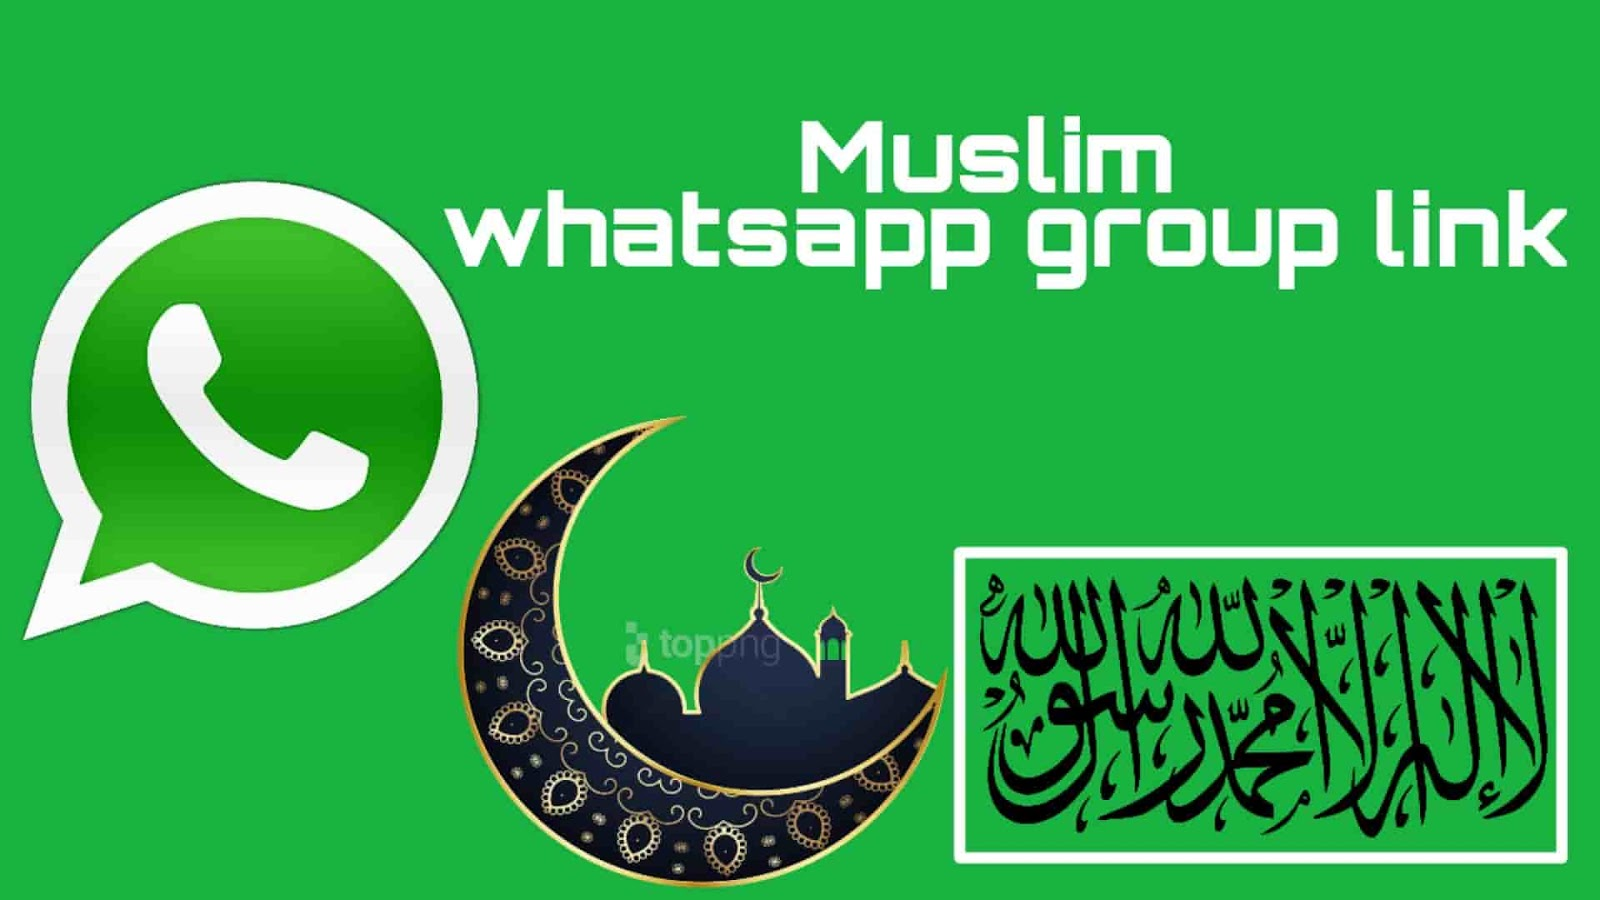 100+(active) Muslim Whatsapp group link 2019